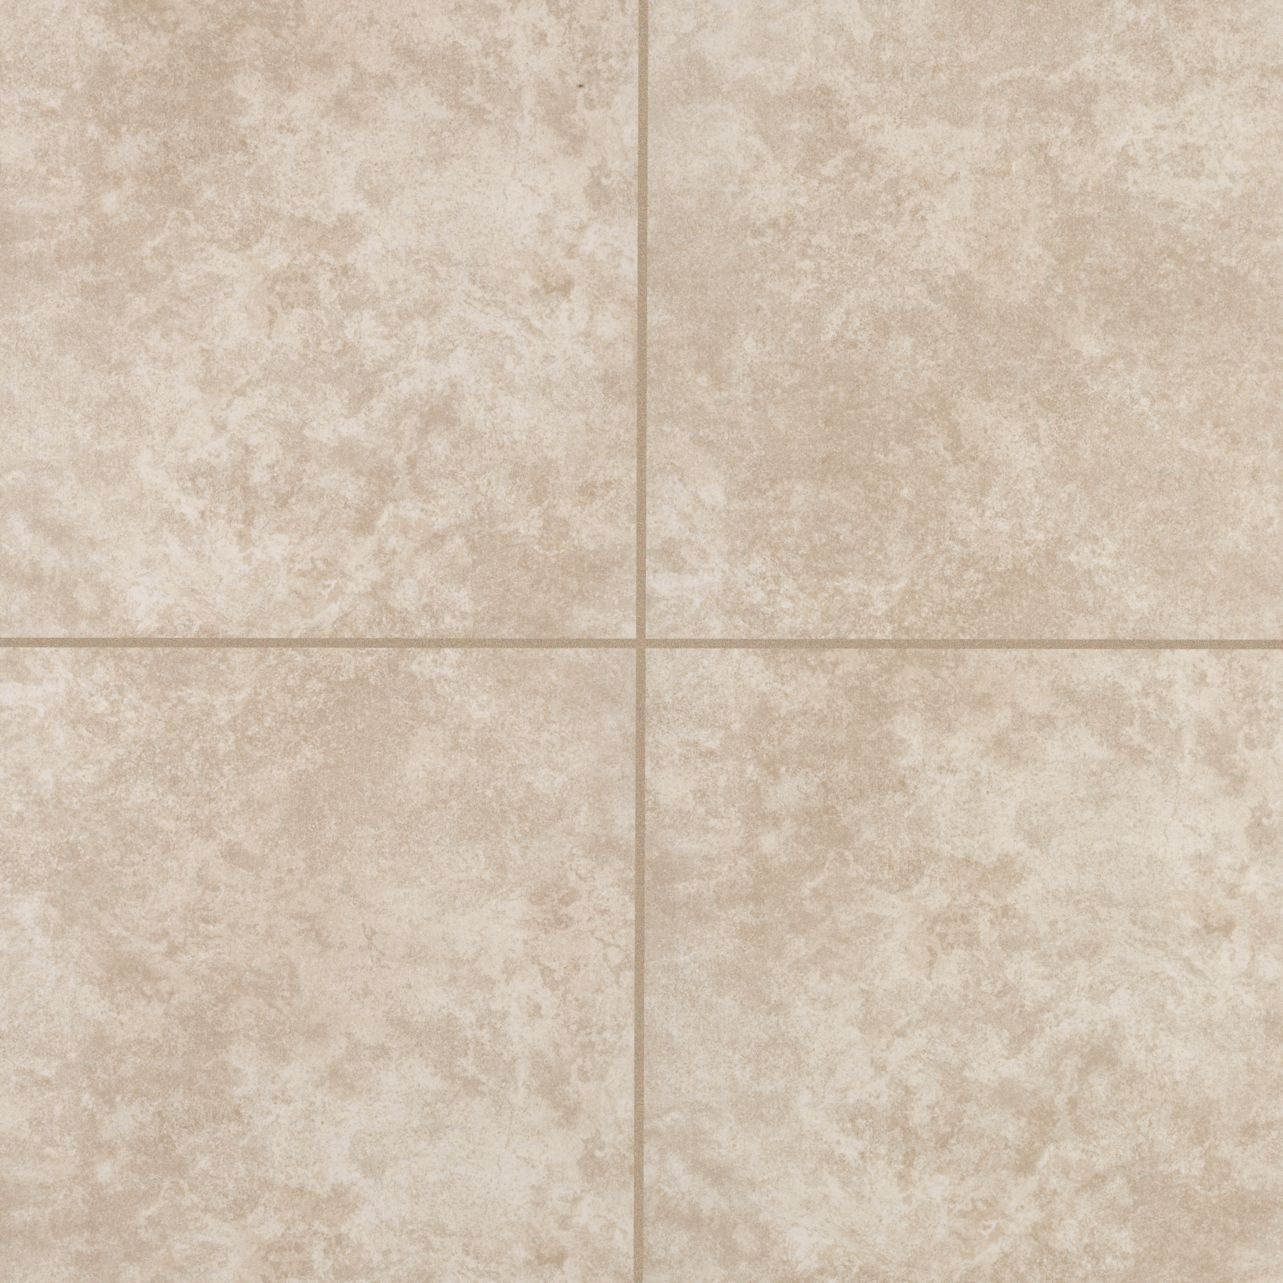 CeramicPorcelainTile AstelloWall T810F-AN34 Beige